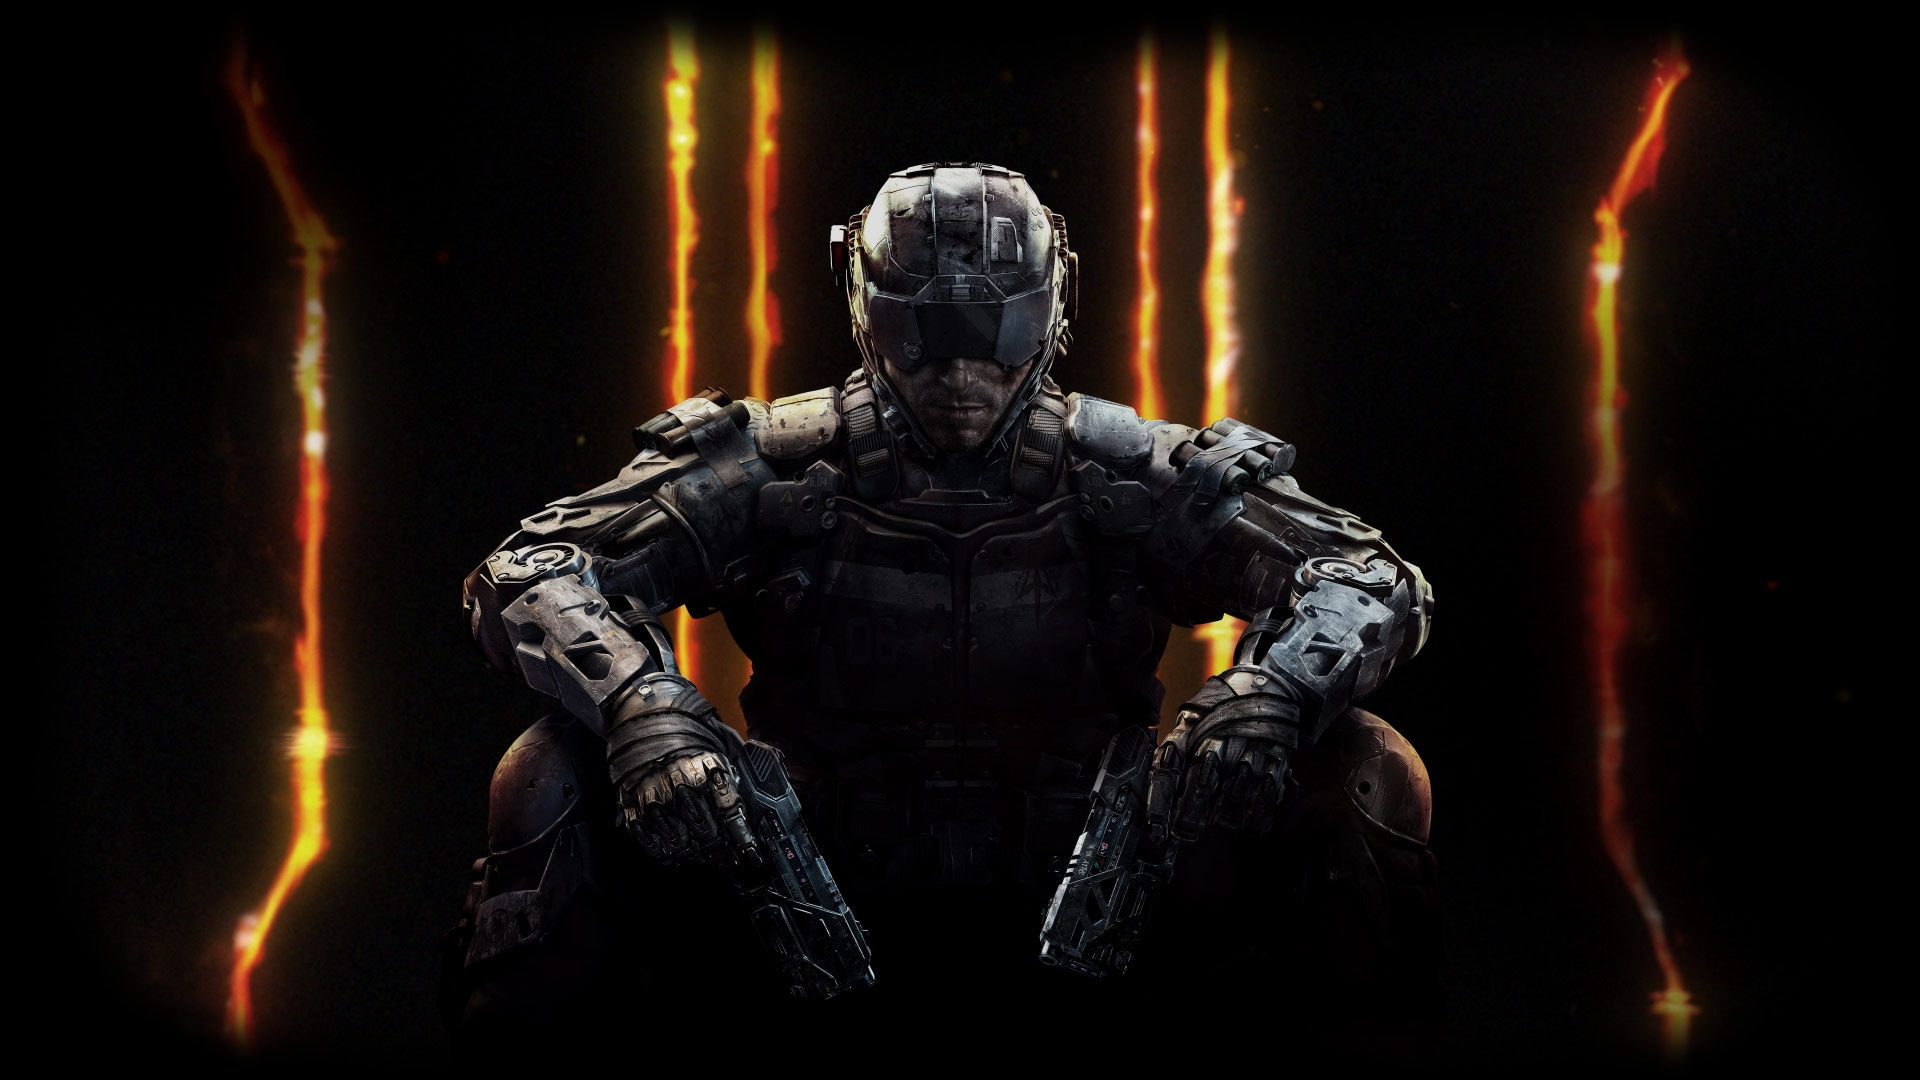 This Years Call Of Duty Will Be Black Ops 4